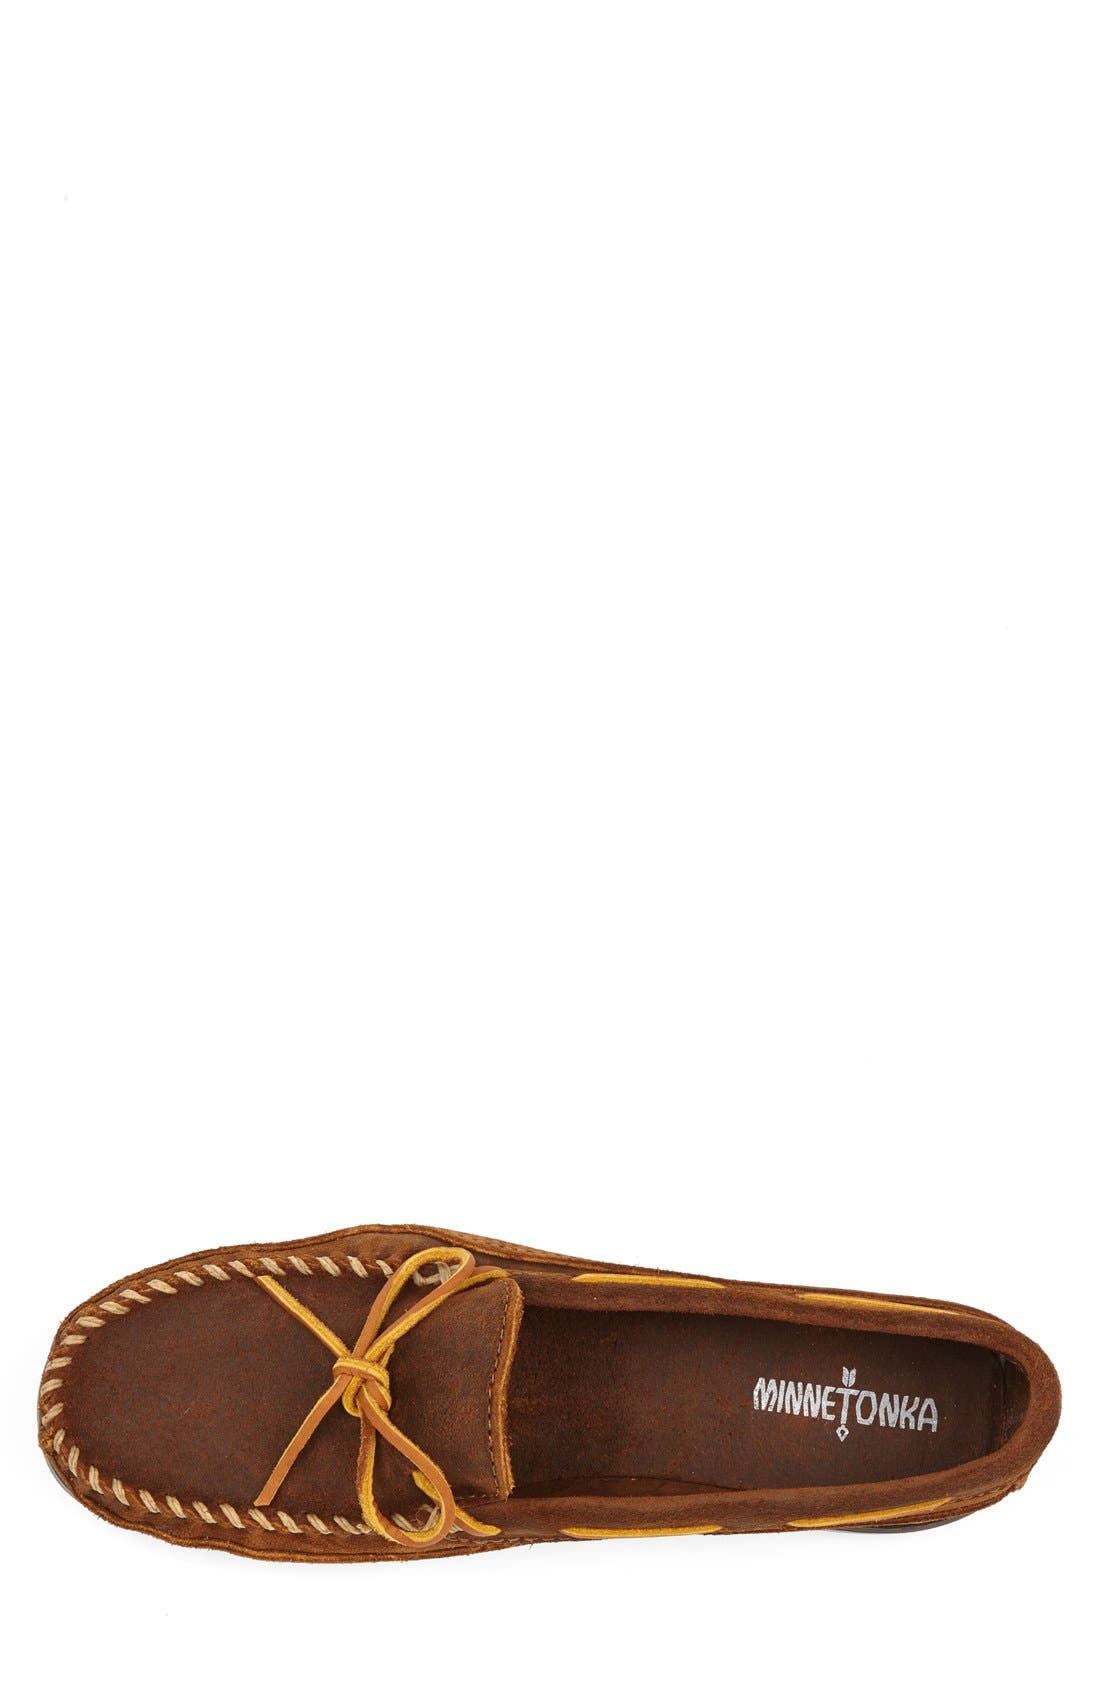 Leather Moccasin,                             Alternate thumbnail 3, color,                             212